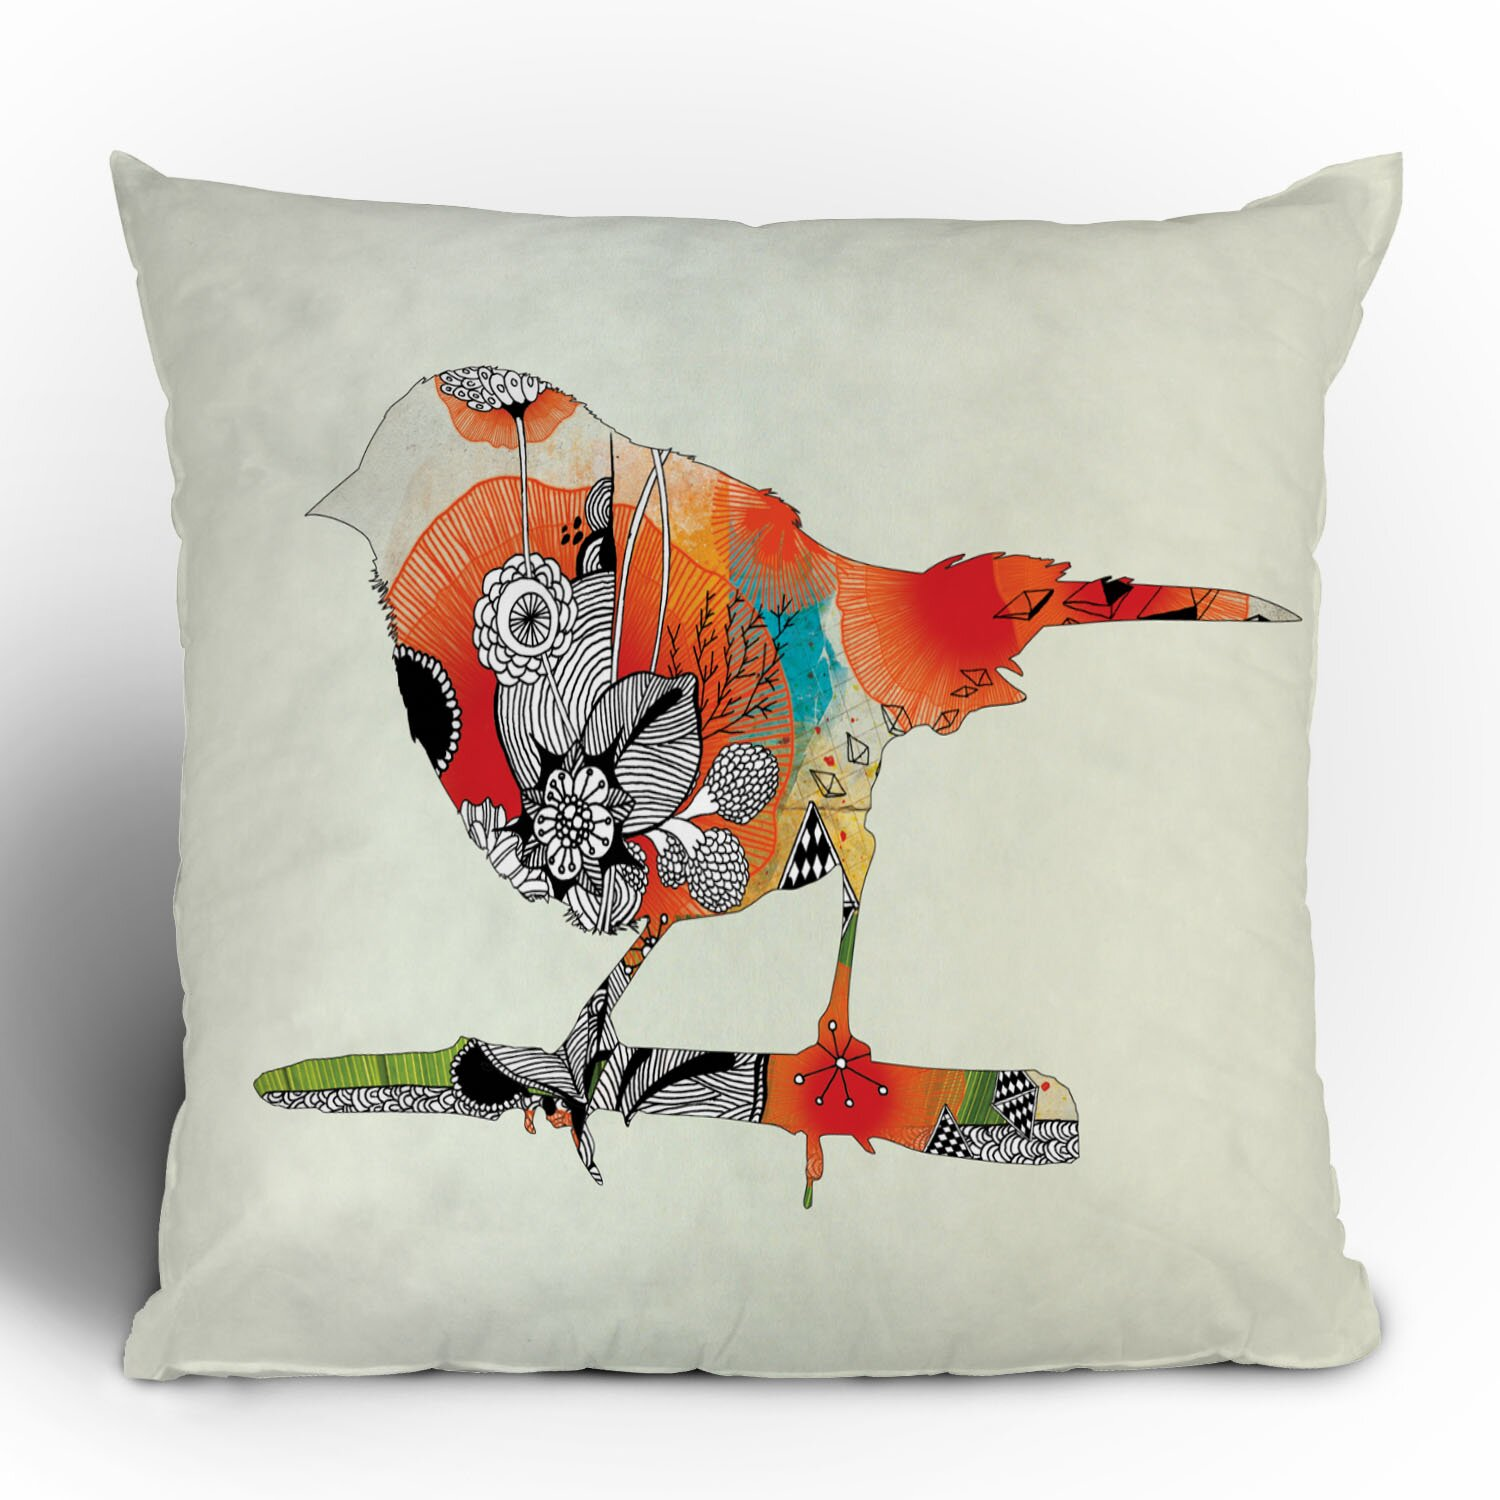 Throw Pillows With Birds : DENY Designs Iveta Abolina Little Bird Throw Pillow & Reviews Wayfair